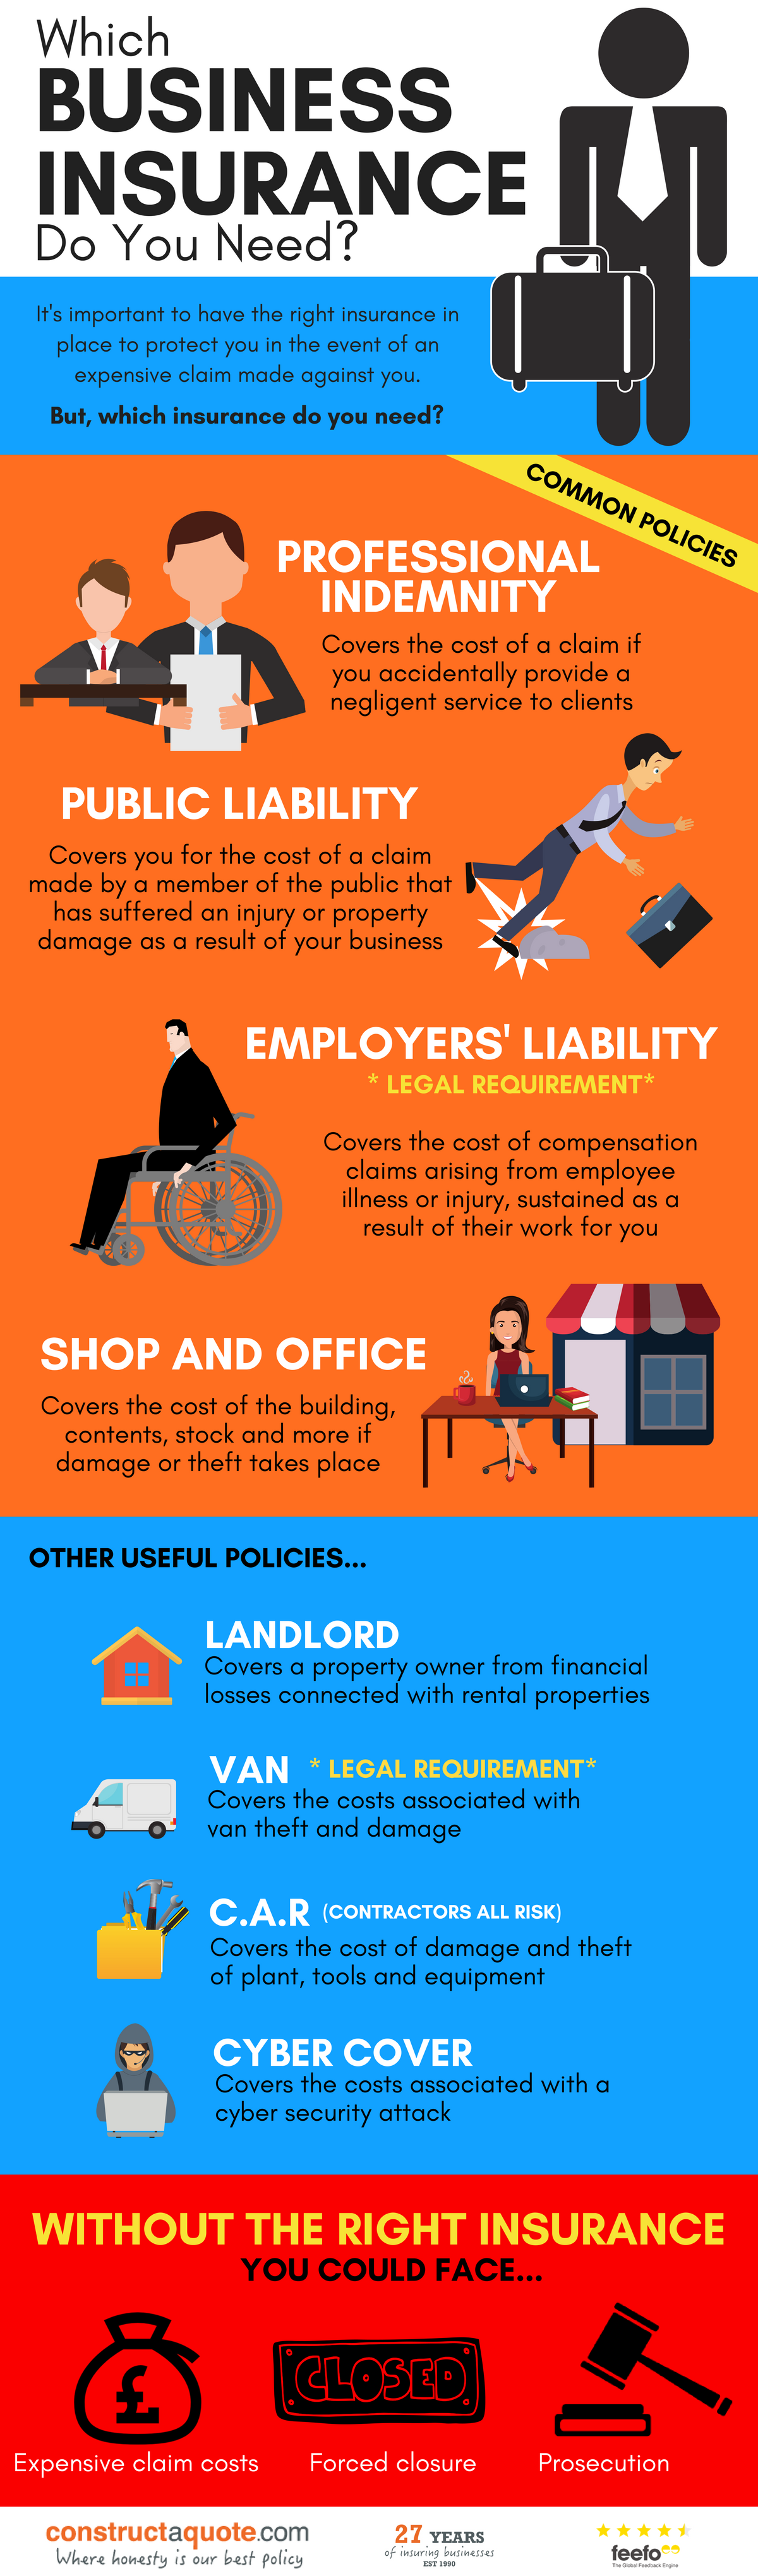 Infographic: Which Business Insurance Do You Need?